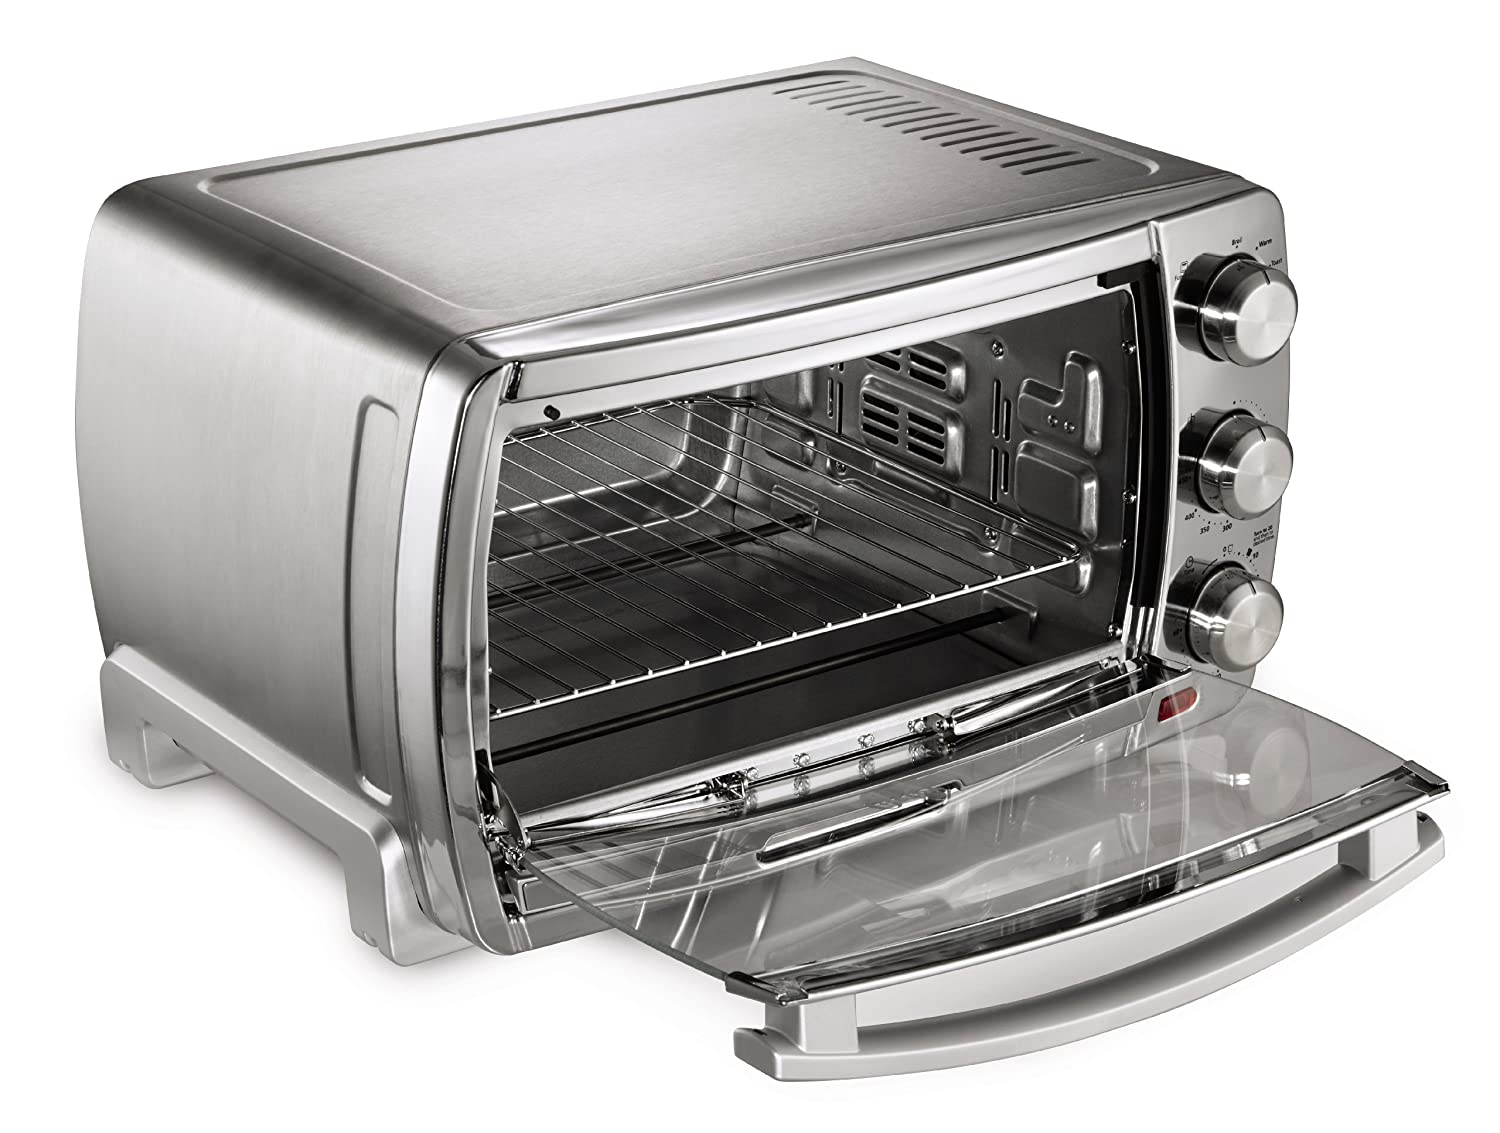 Large Capacity Countertop Convection Oven Food Network : Convection Ovens: Convection Oven Large